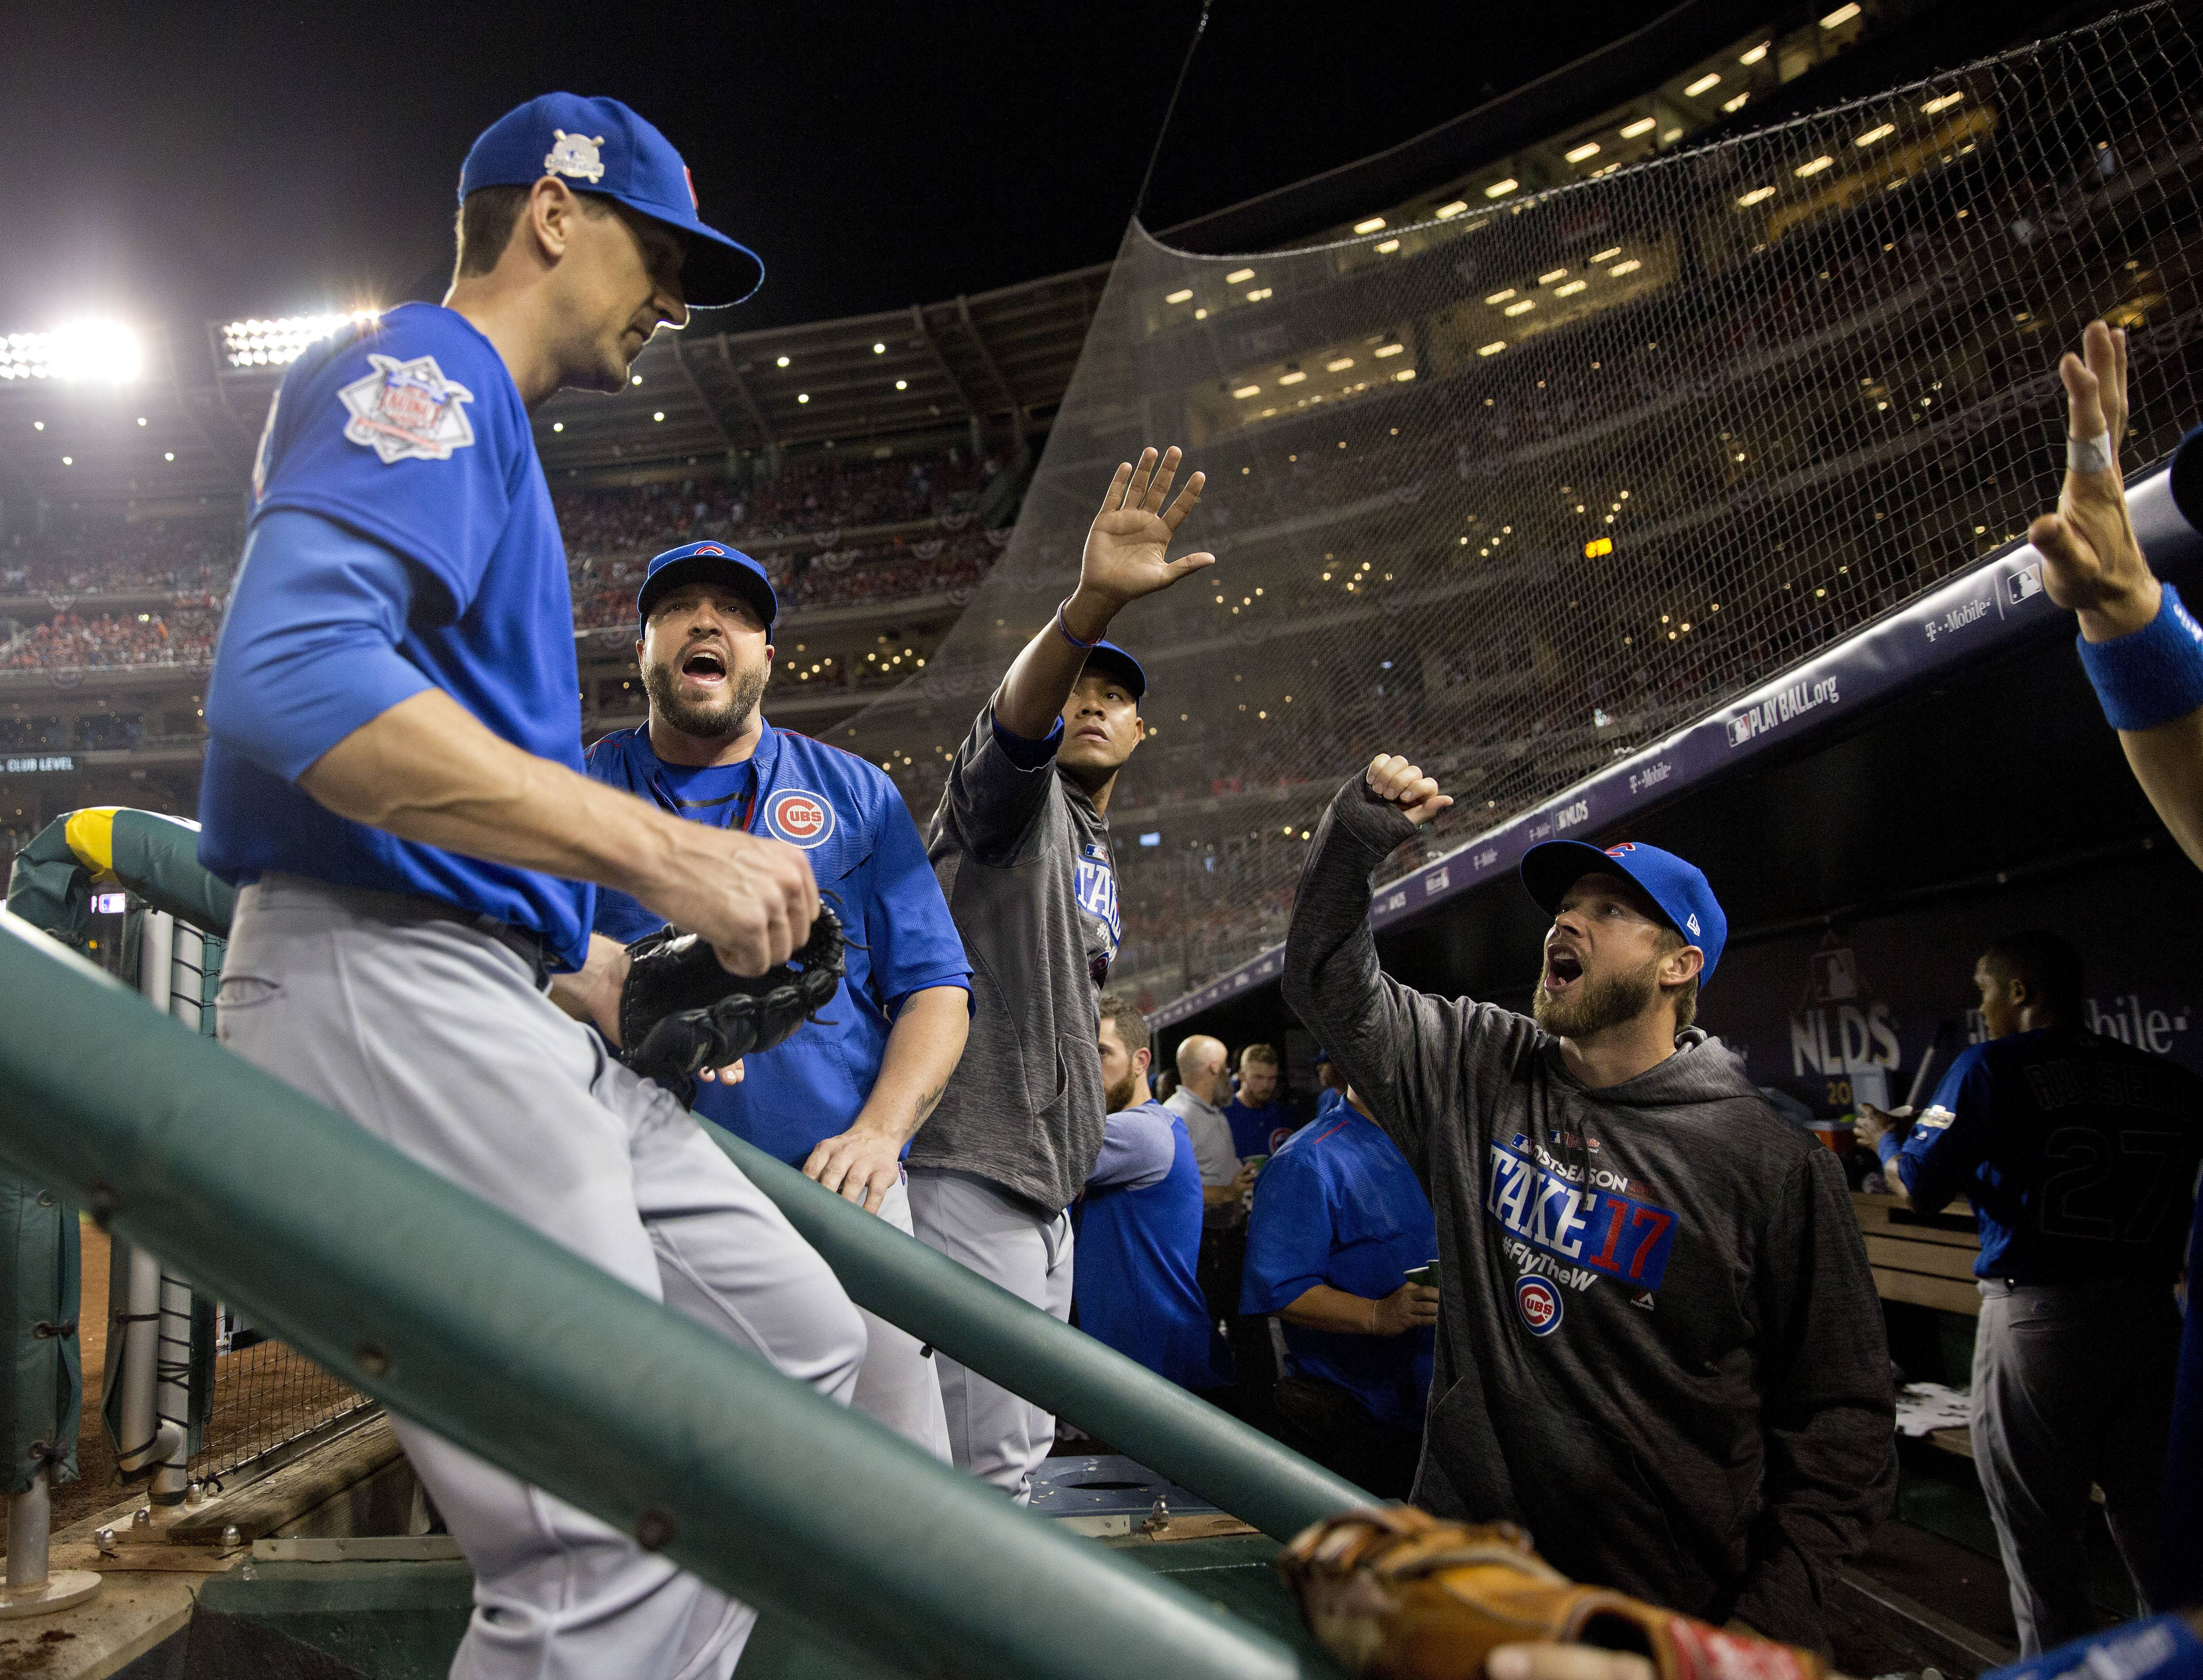 Chicago Cubs starting pitcher Kyle Hendricks dueled Washington Nationals star Stephen Strasburg pitch for pitch Friday night. The Cubs took advantage of a break, and captured Game 1 of the National League division series 3-0 at Nationals Park.